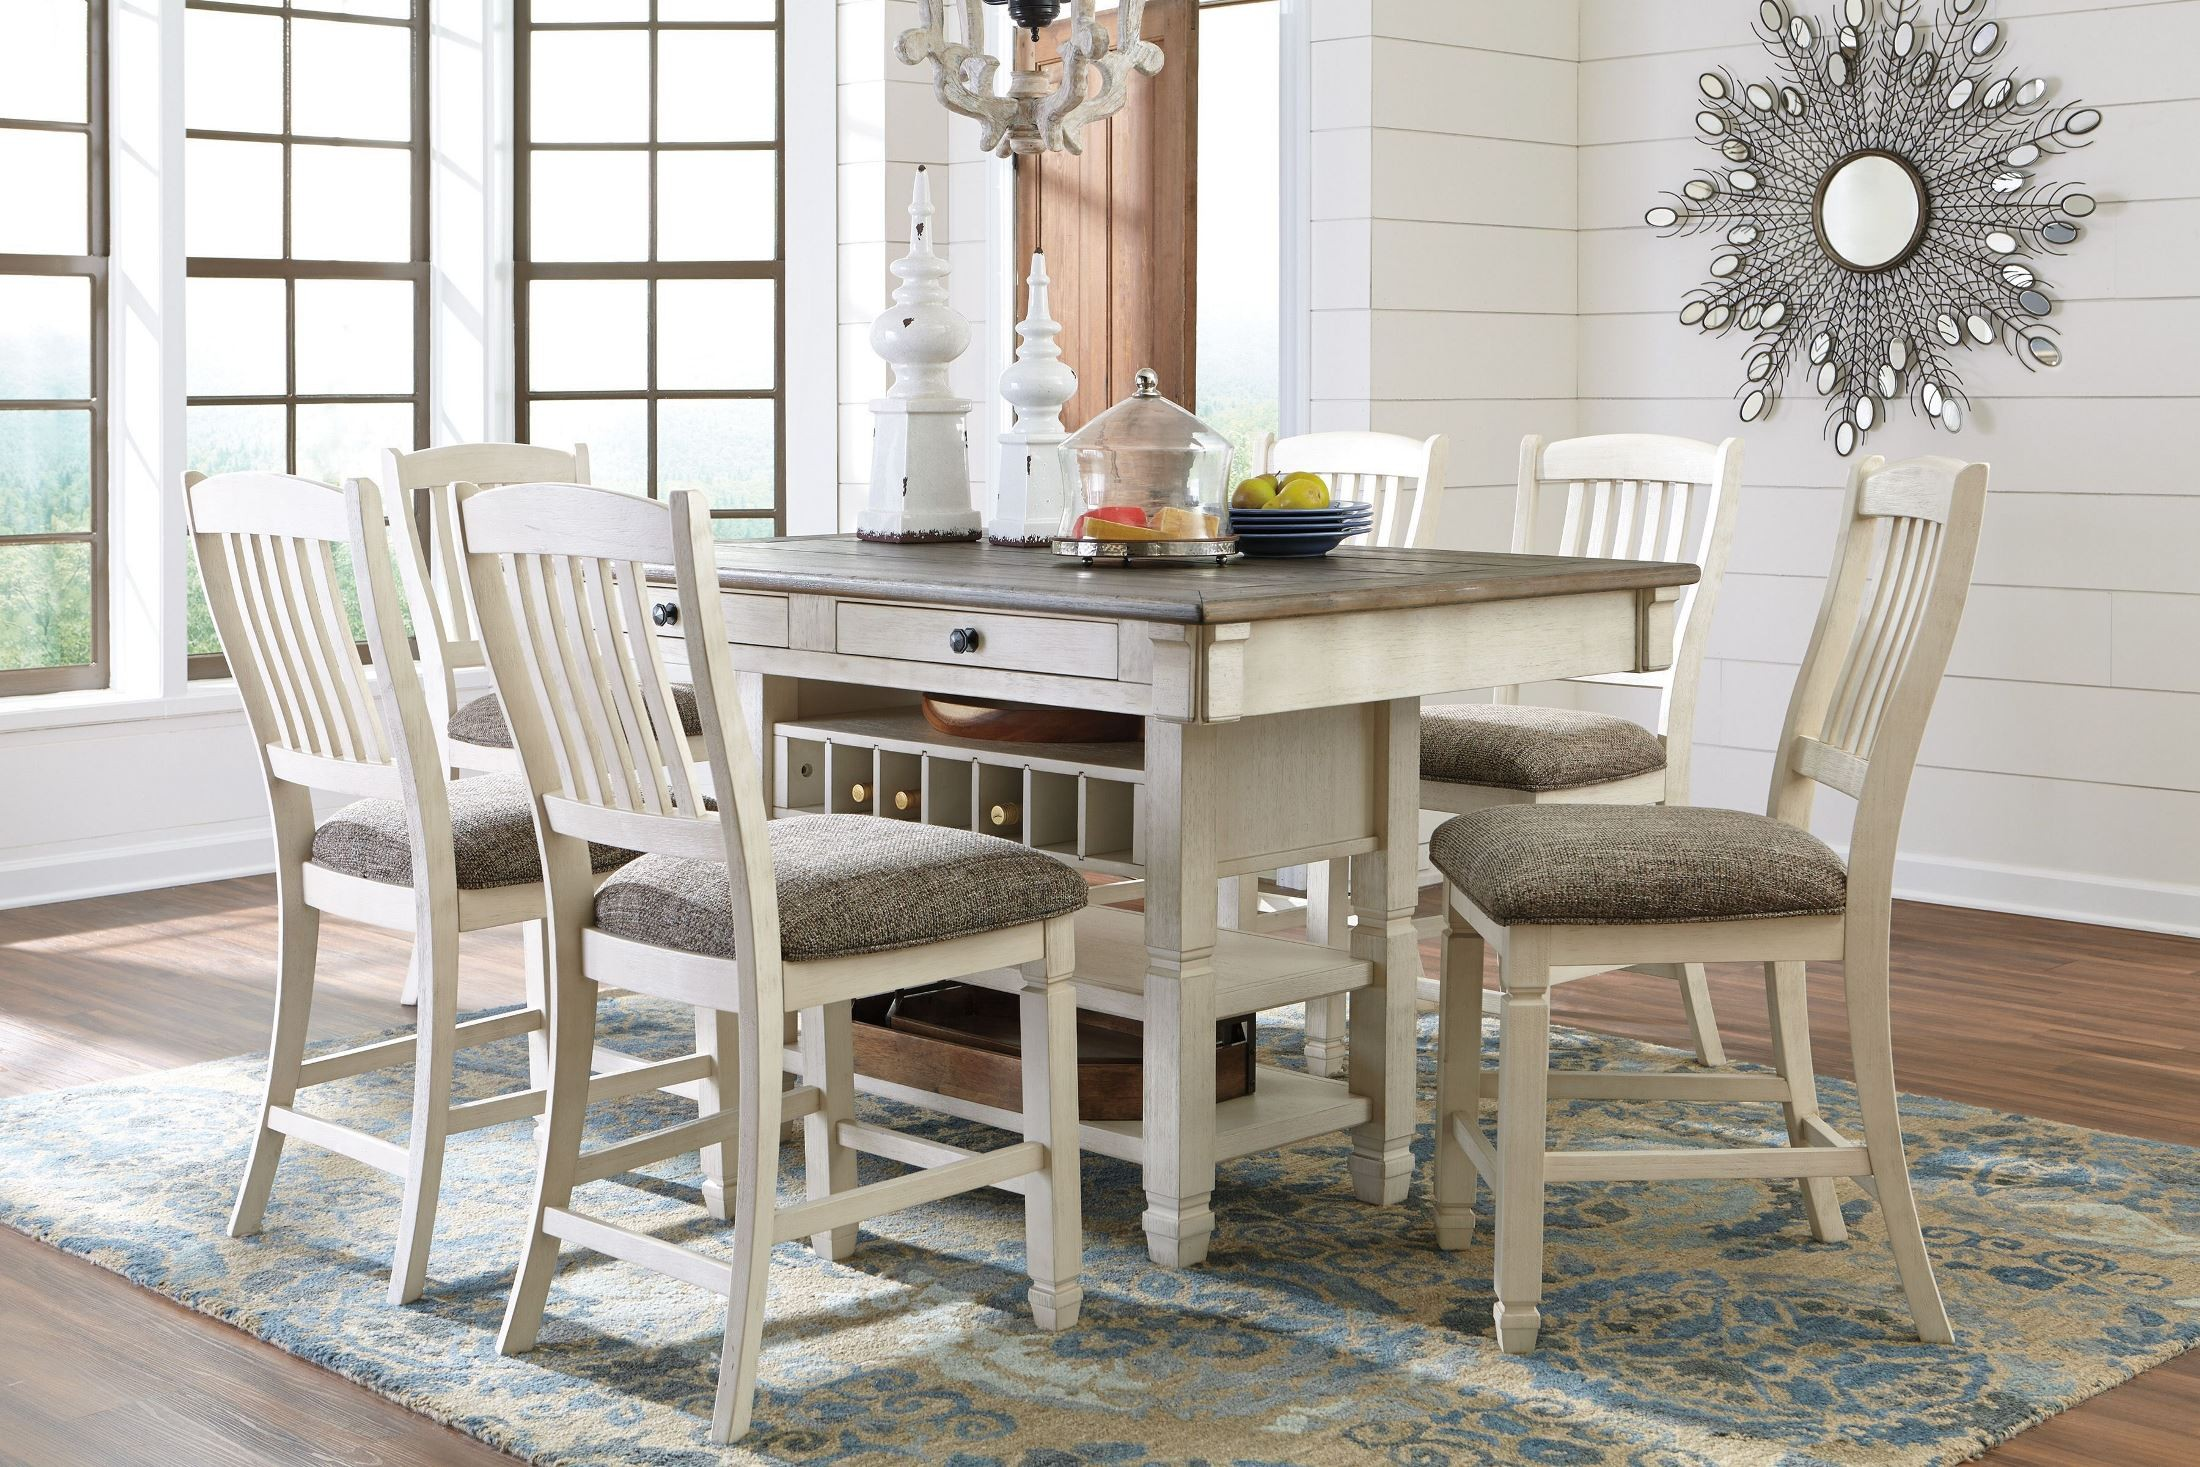 High Dining Room Sets Bolanburg White And Gray Rectangular Counter Height Dining